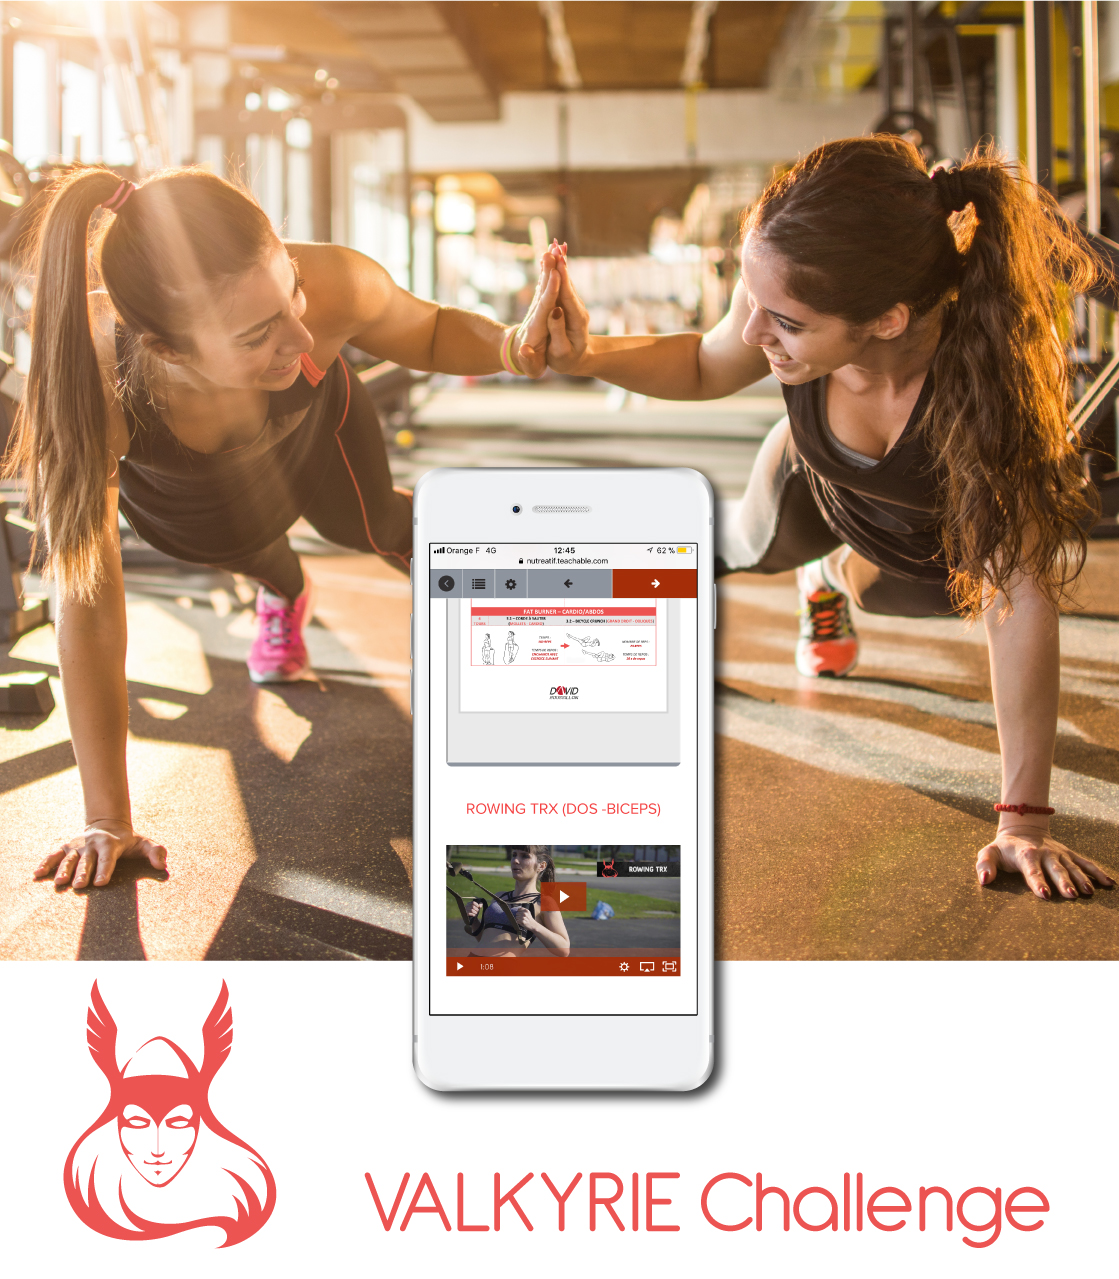 30 jours fitness challenge application